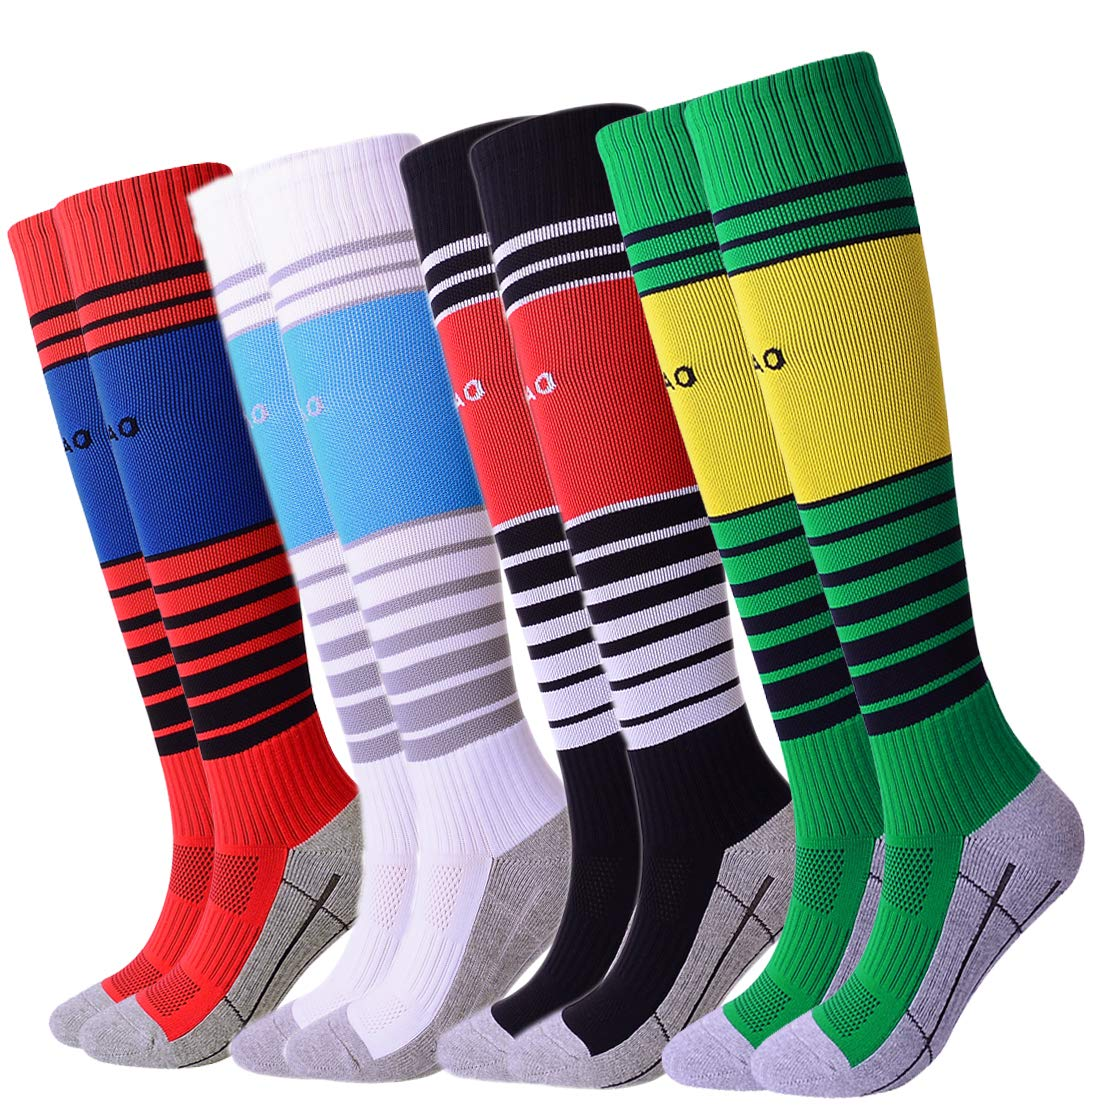 Youth Soccer Socks Teens Knee High Football Socks Long Striped Rugby Tube Socks 4 Pairs (Black/White/Green/Navy) B by Gupying